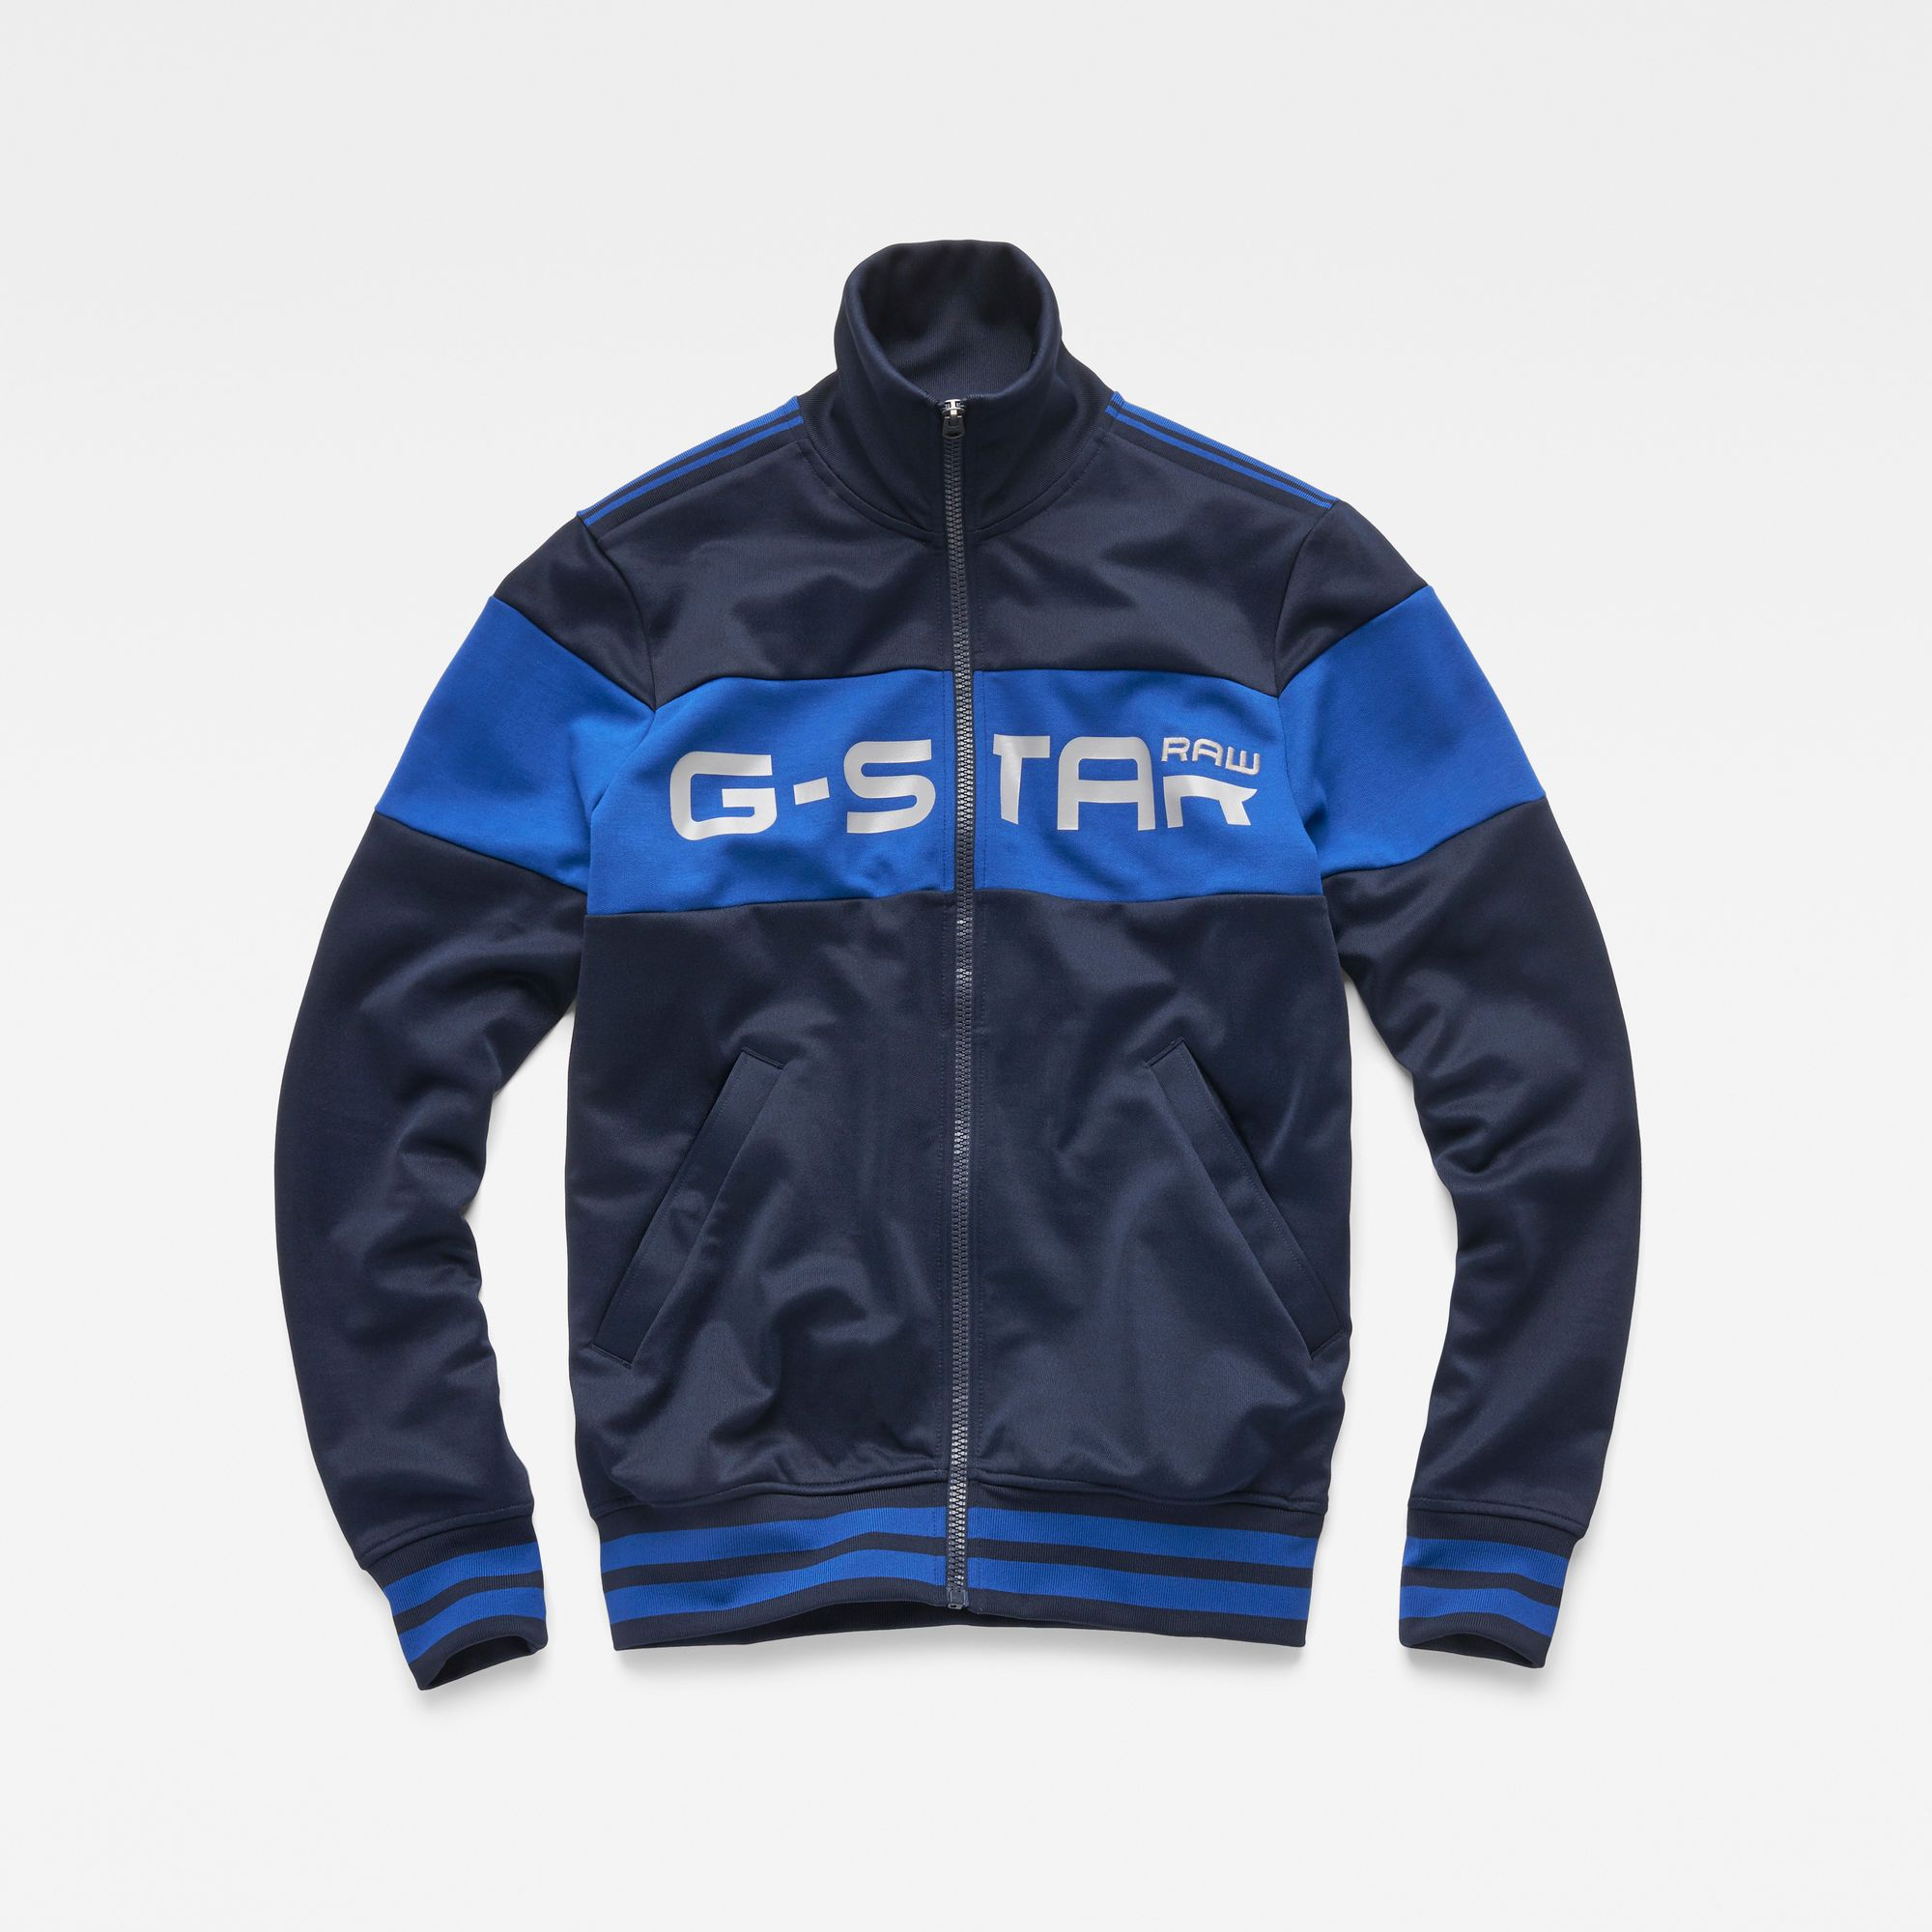 ef8809a7b46 Alchesai Slim Tracktop Sweat in 2019 | G-Star Raw Clothing | Raw ...